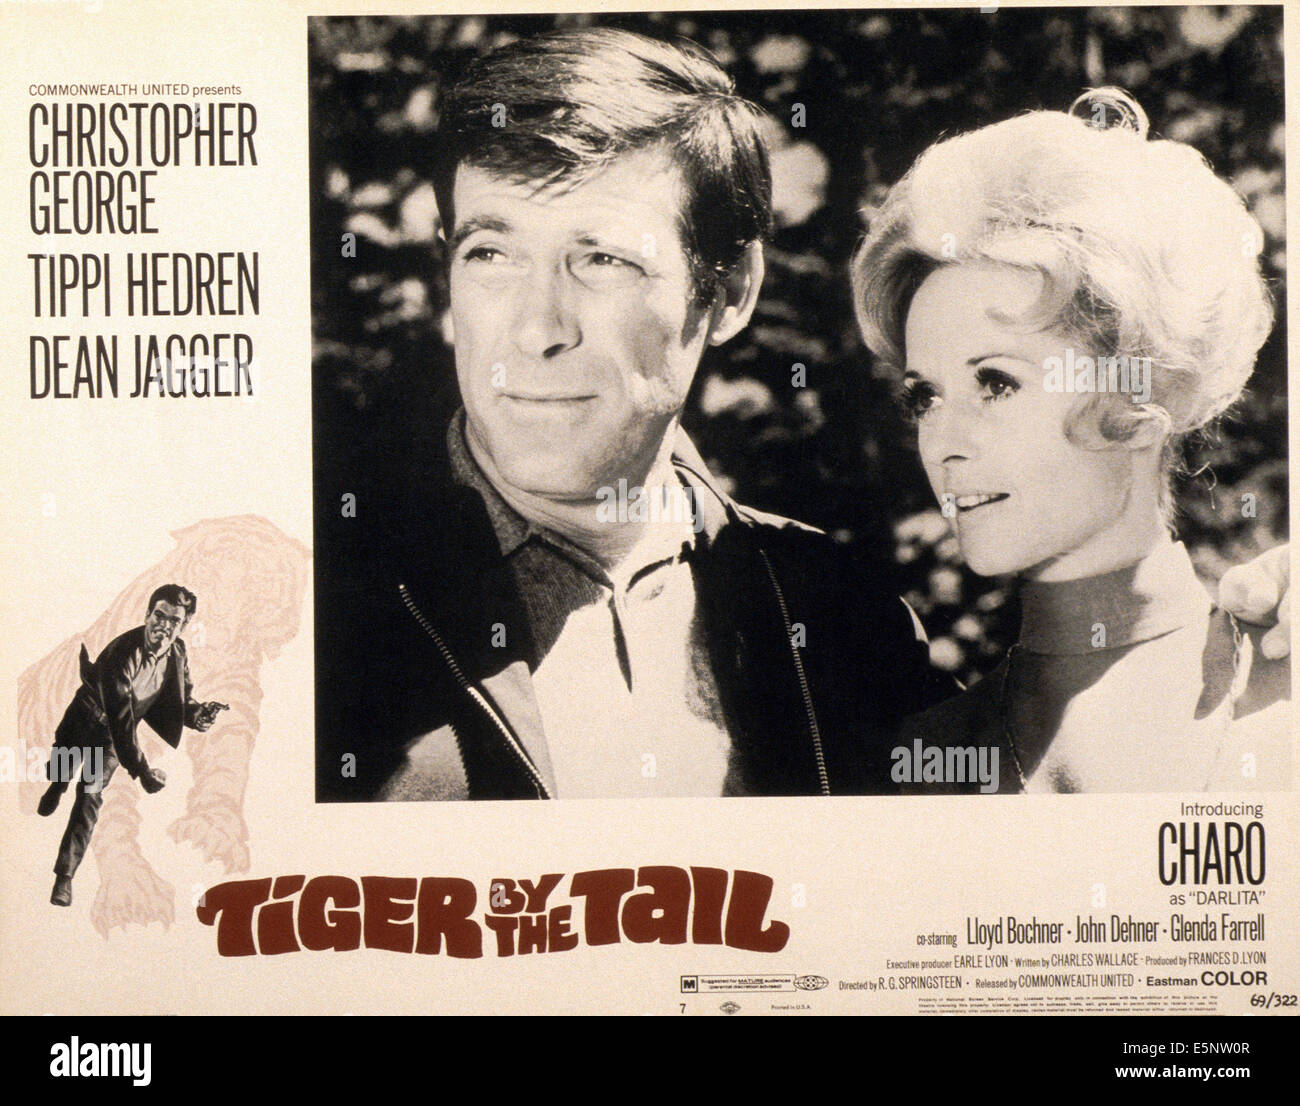 TIGER BY THE TAIL, US lobbycard, from left: Christopher George, Tippi Hedren, 1970 - Stock Image